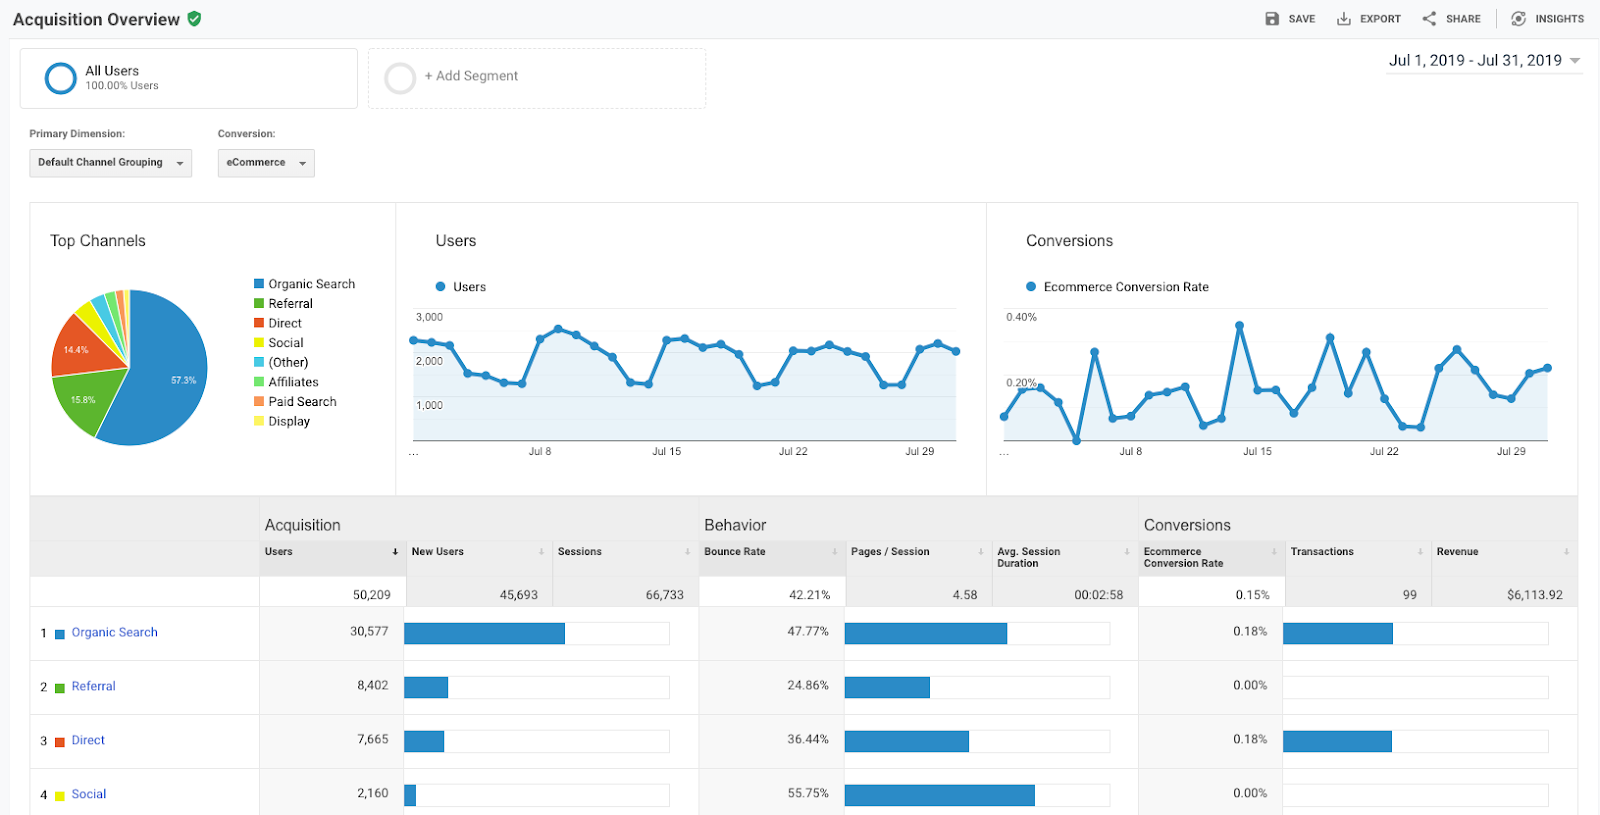 Google Analytics - Acquisition Overview